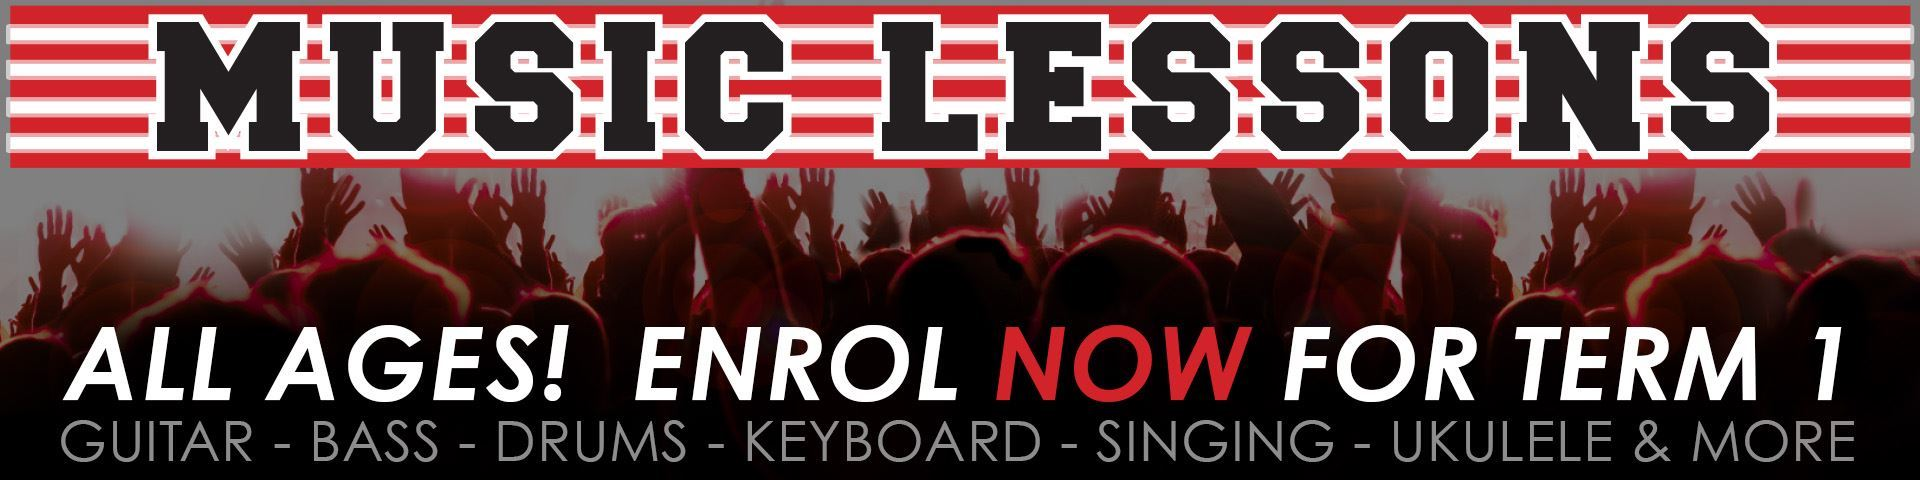 Music Lessons in Perth - Enrol Today